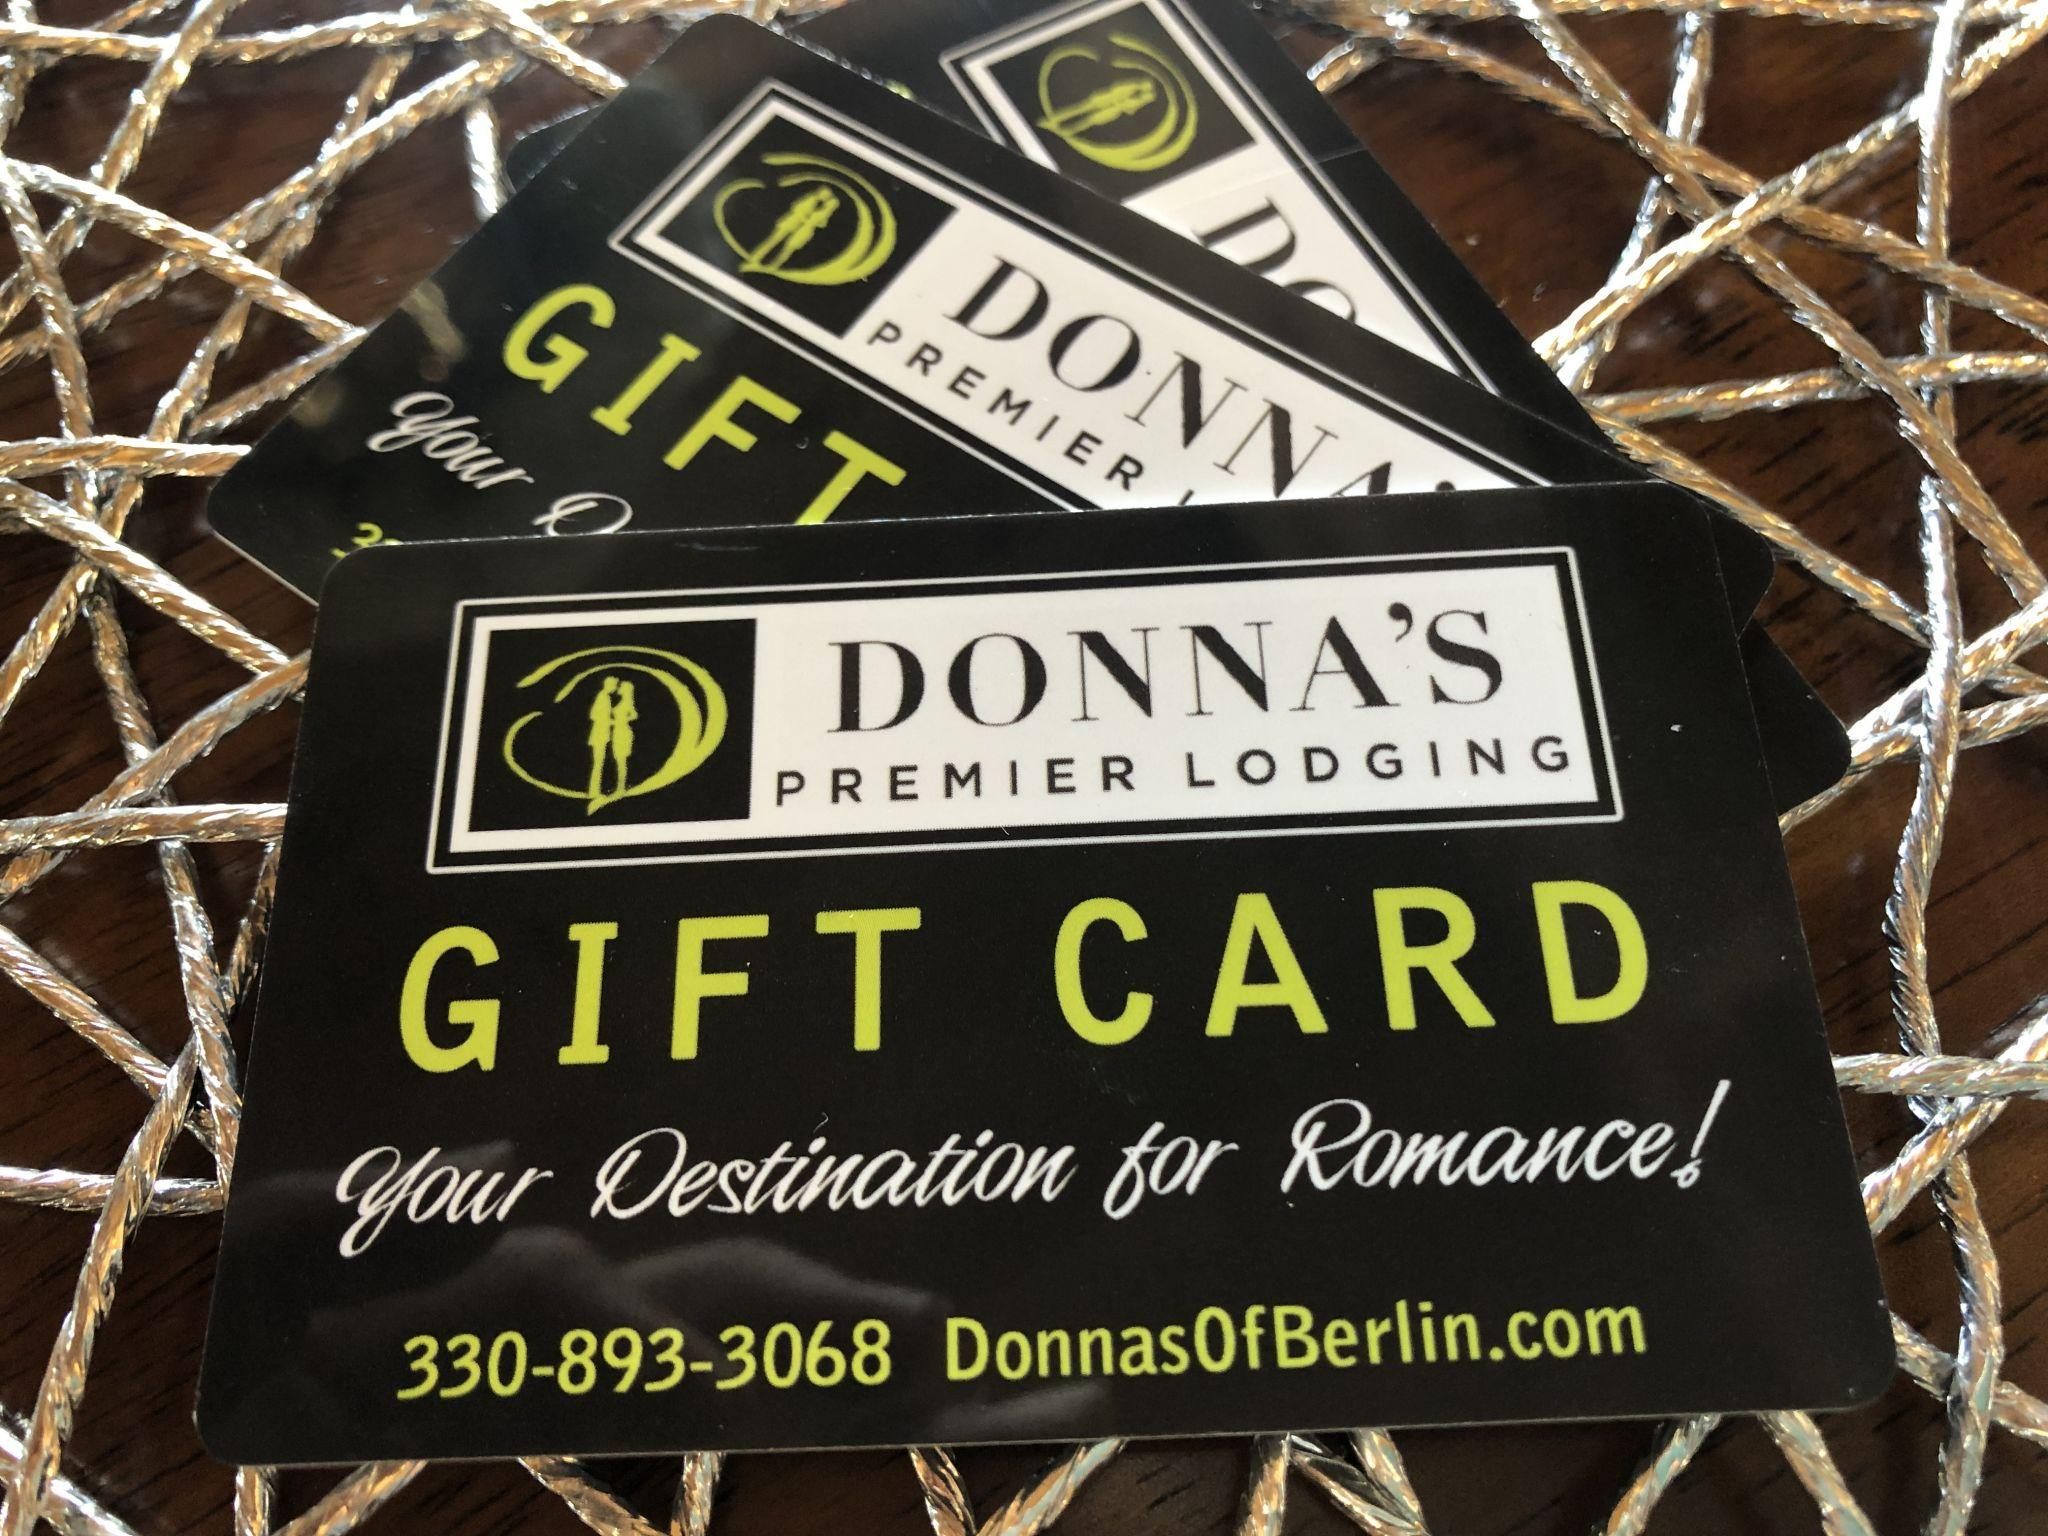 Give the Gift of Donna's Premier Lodging